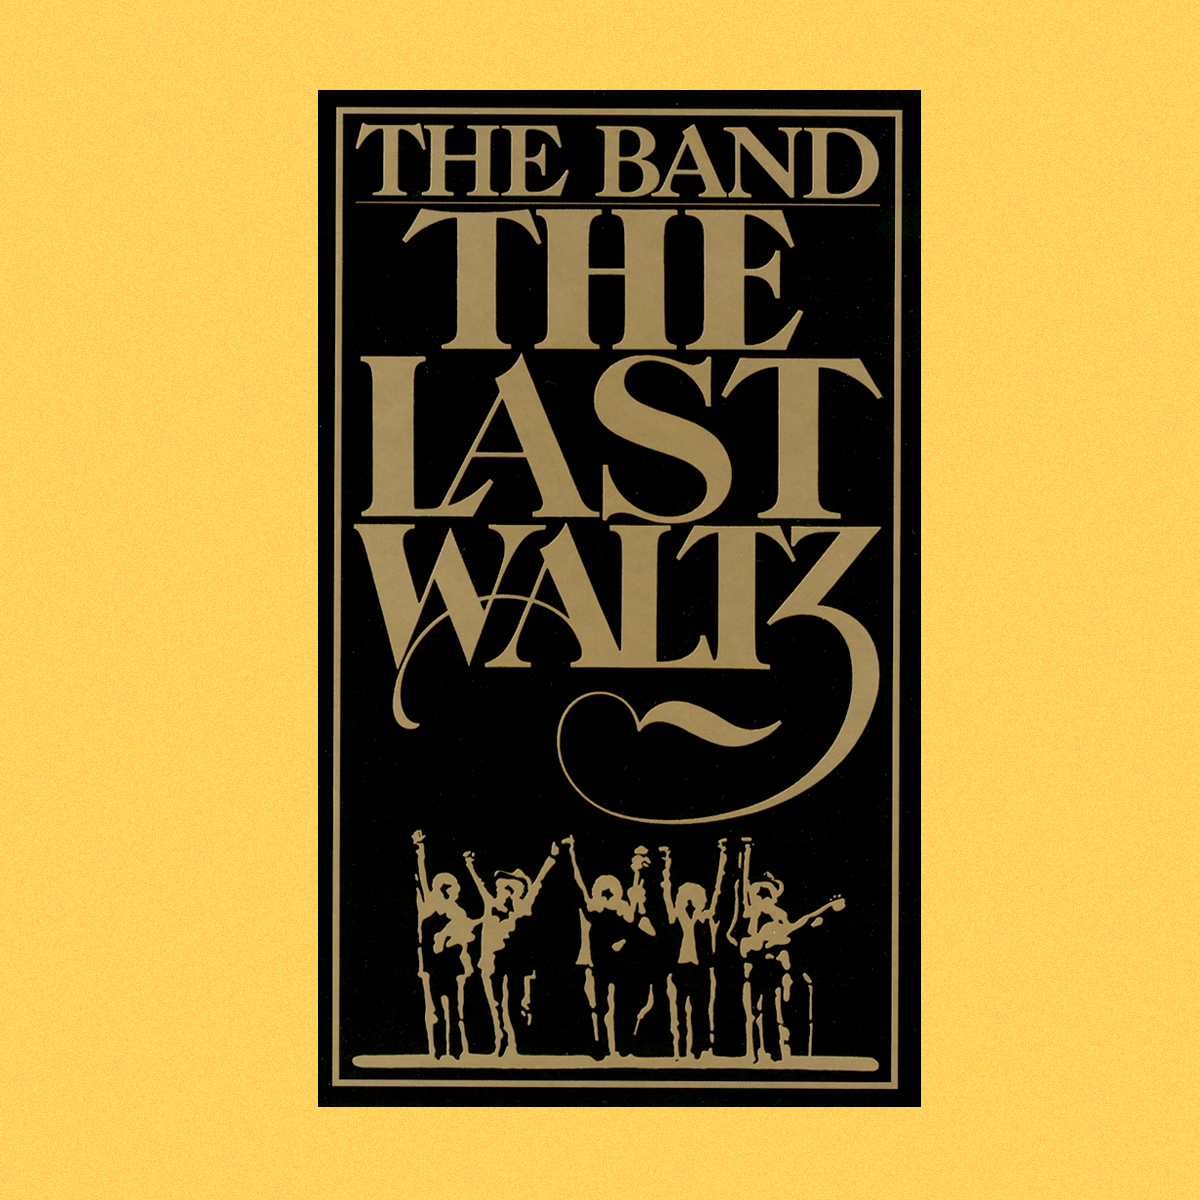 The Band - The Last Waltz (2008)